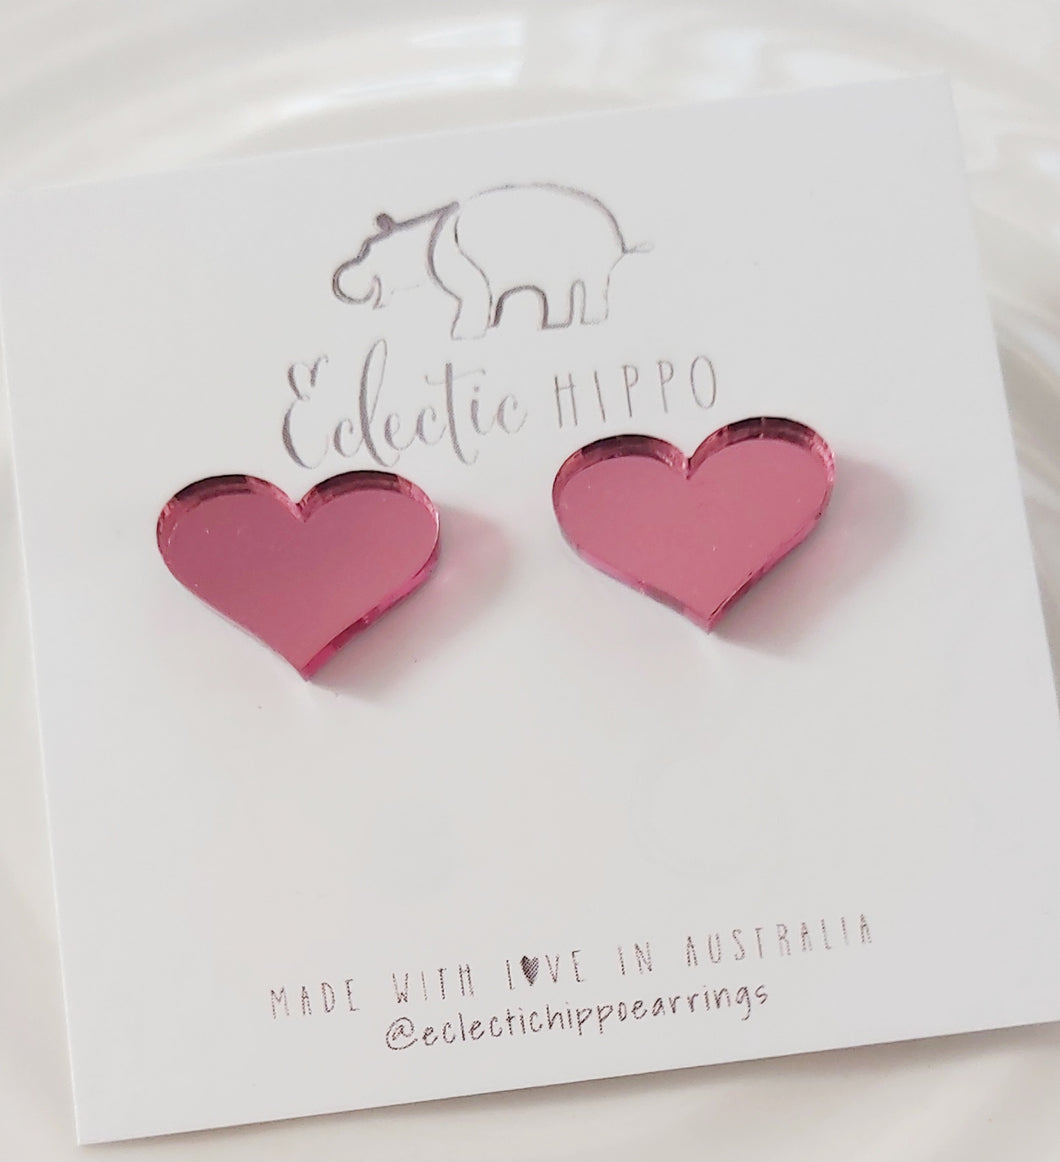 ECLECTIC HIPPO EARRINGS - HEART STUDS - (Choose between Pink Mirror or Pink Glitter)